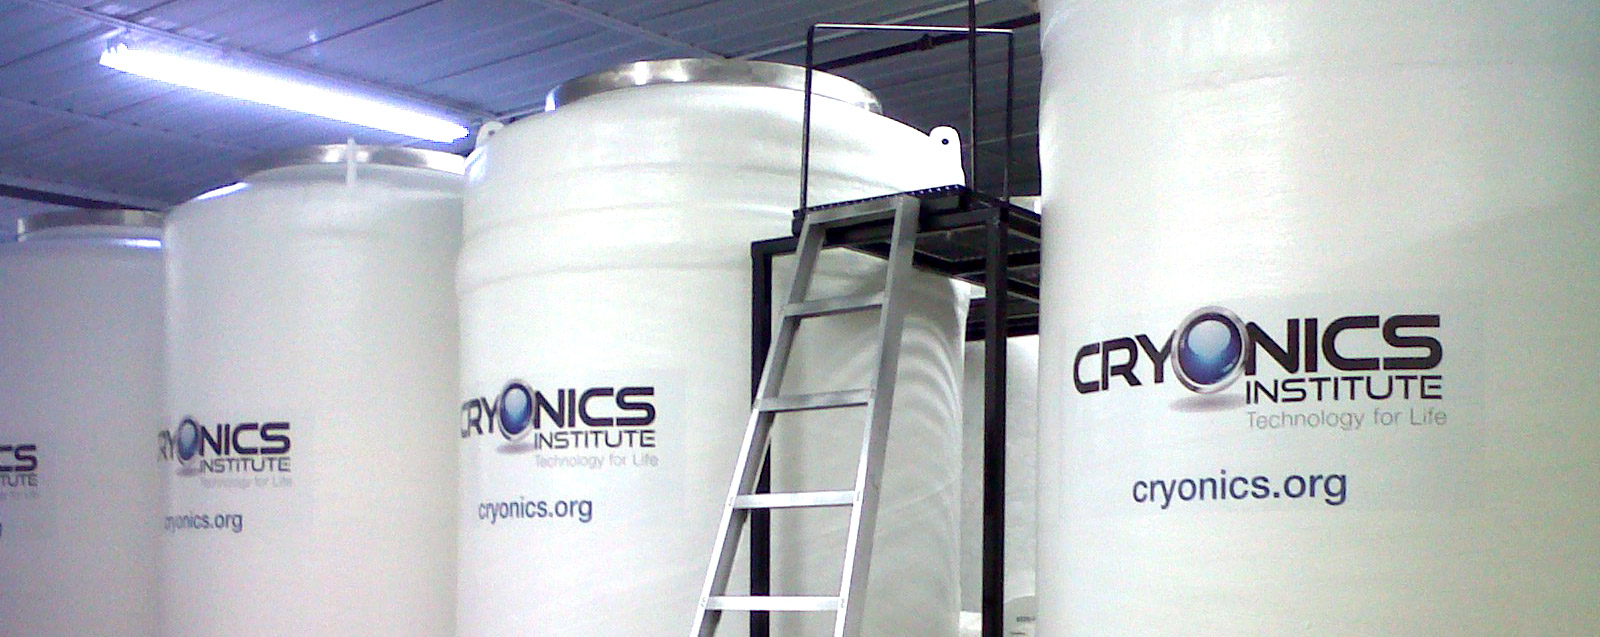 Cryonics, dead body preservation